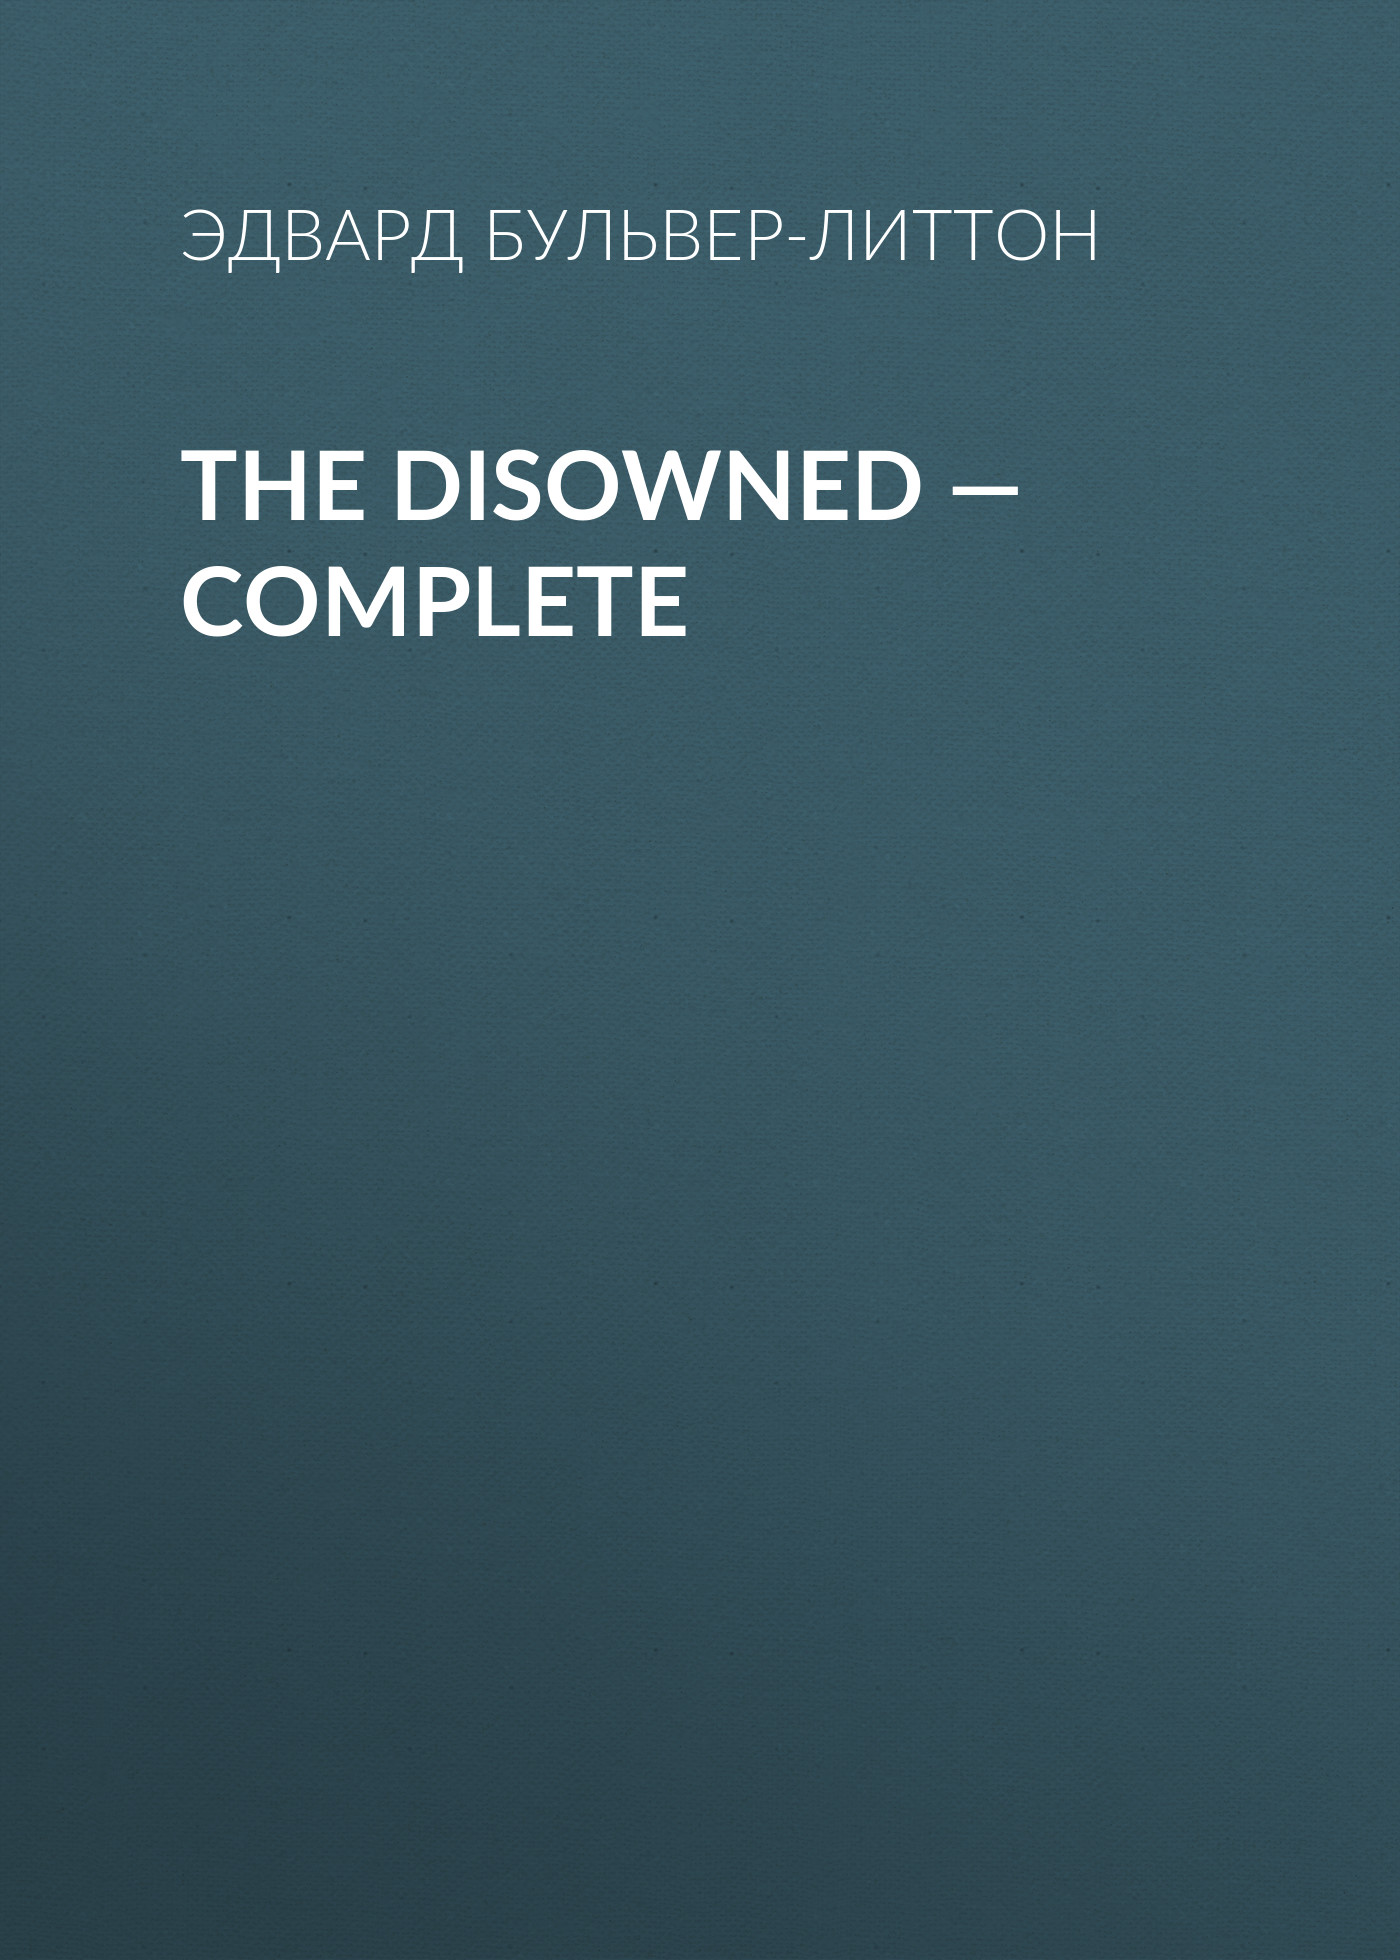 The Disowned — Complete